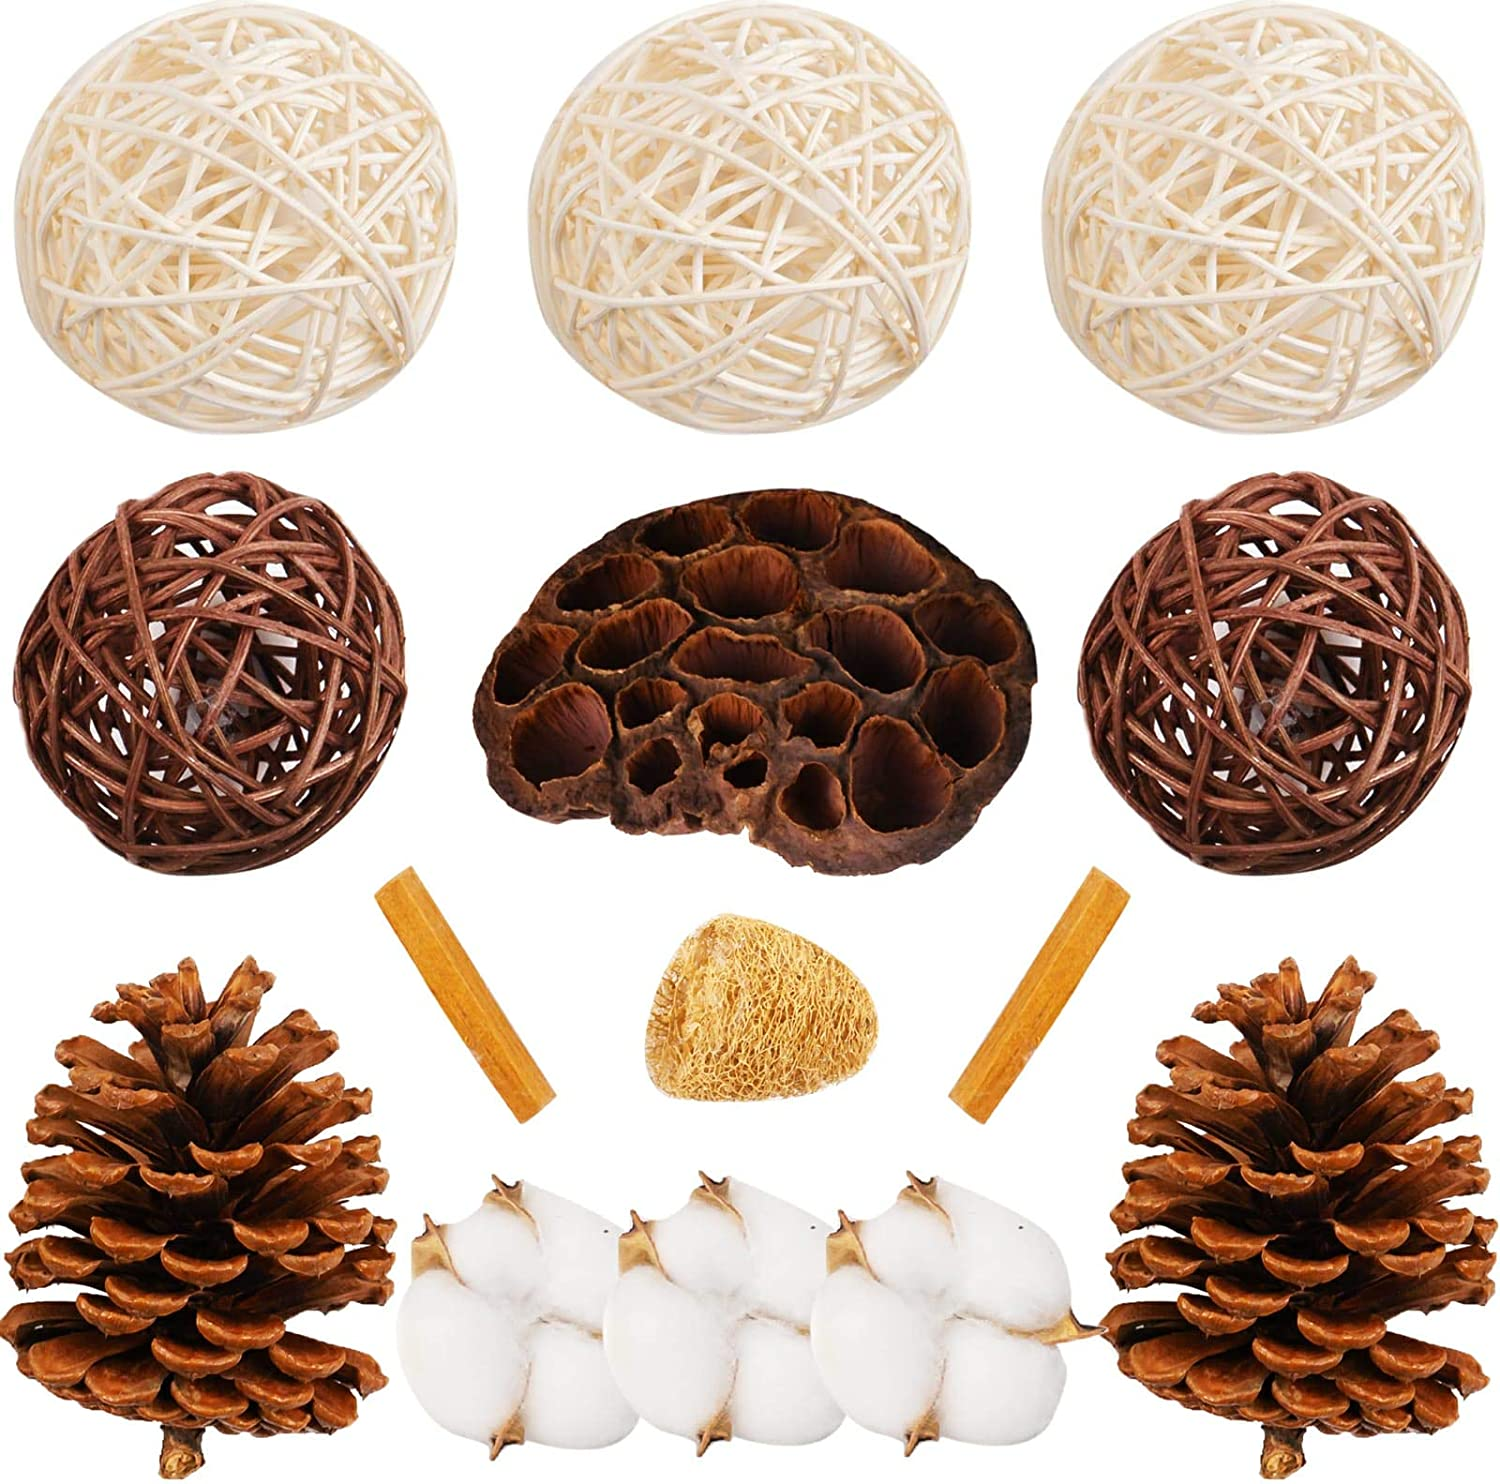 Decorative Balls for Bowls Decorations Set - Vase Fillers 3 White Rattan Balls 2 Brown Rope Woven Balls Cotton Flowers Pine Cones Loofah Sponge Lotus Flower Sandalwood for Wedding Centerpieces Kitchen